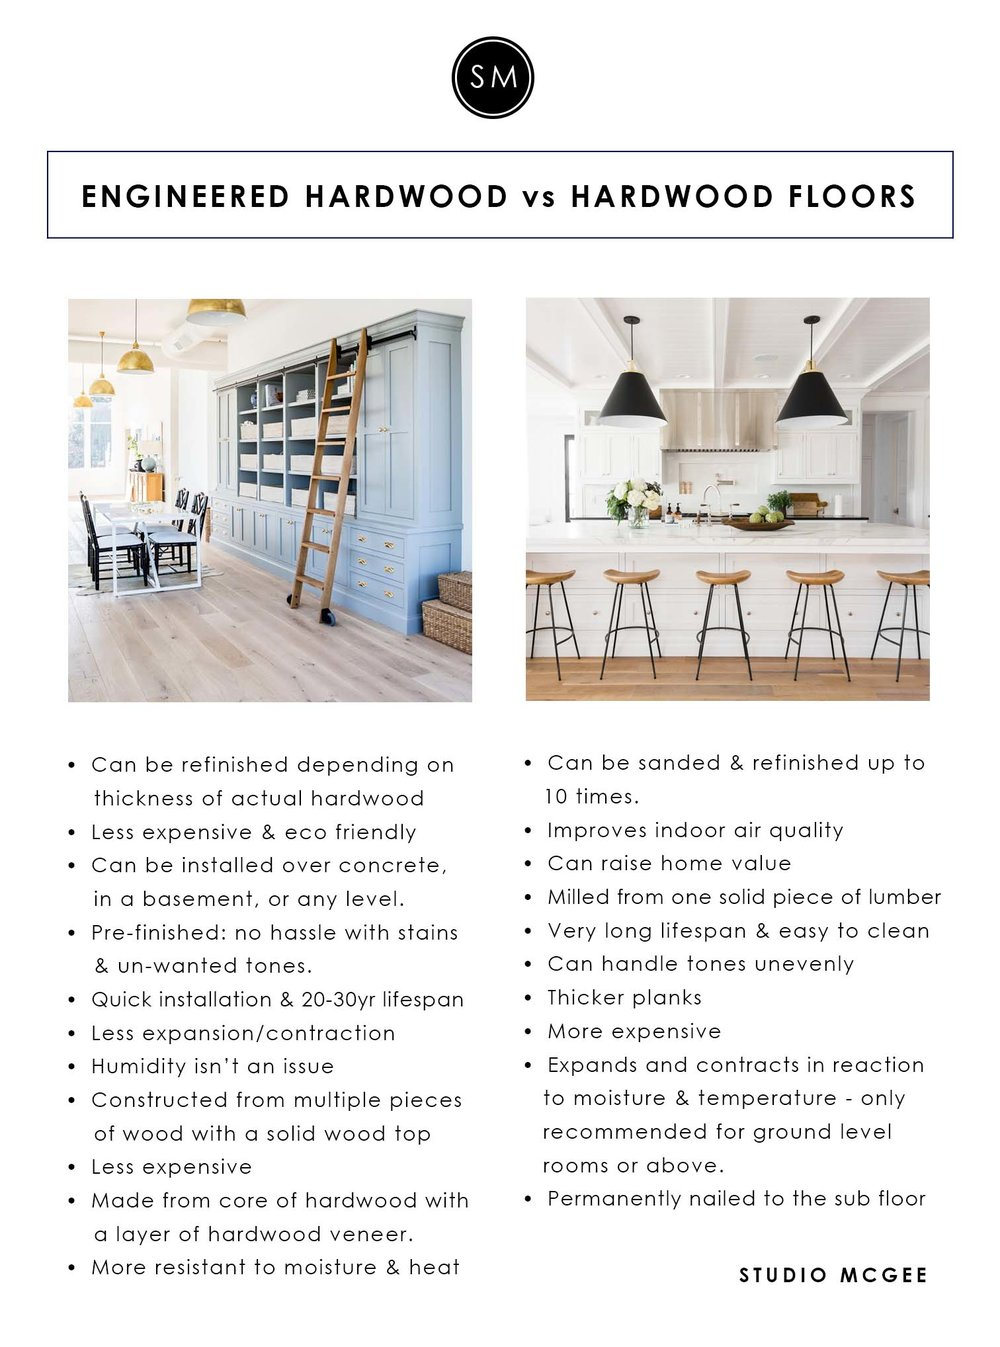 Studio McGee | Engineered vs. Hardwood Floors